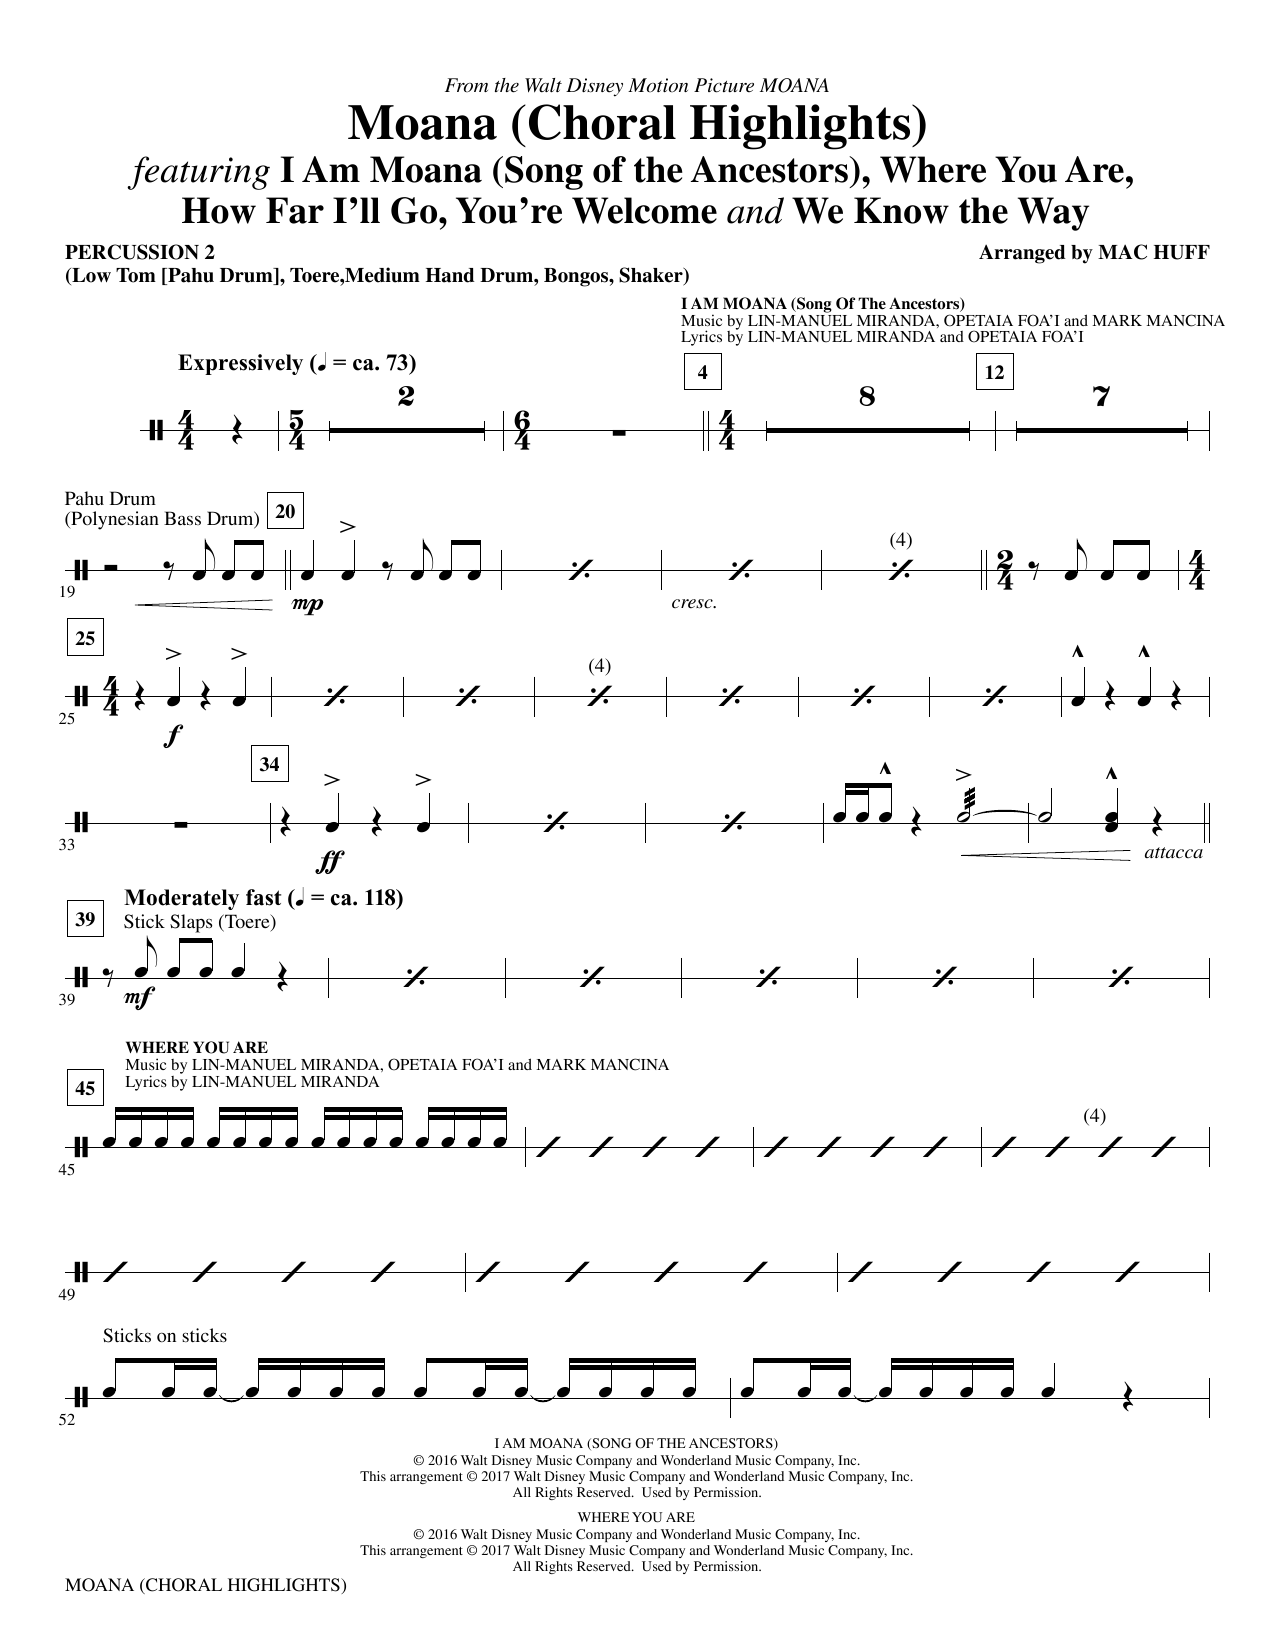 Moana - Percussion 2 Sheet Music